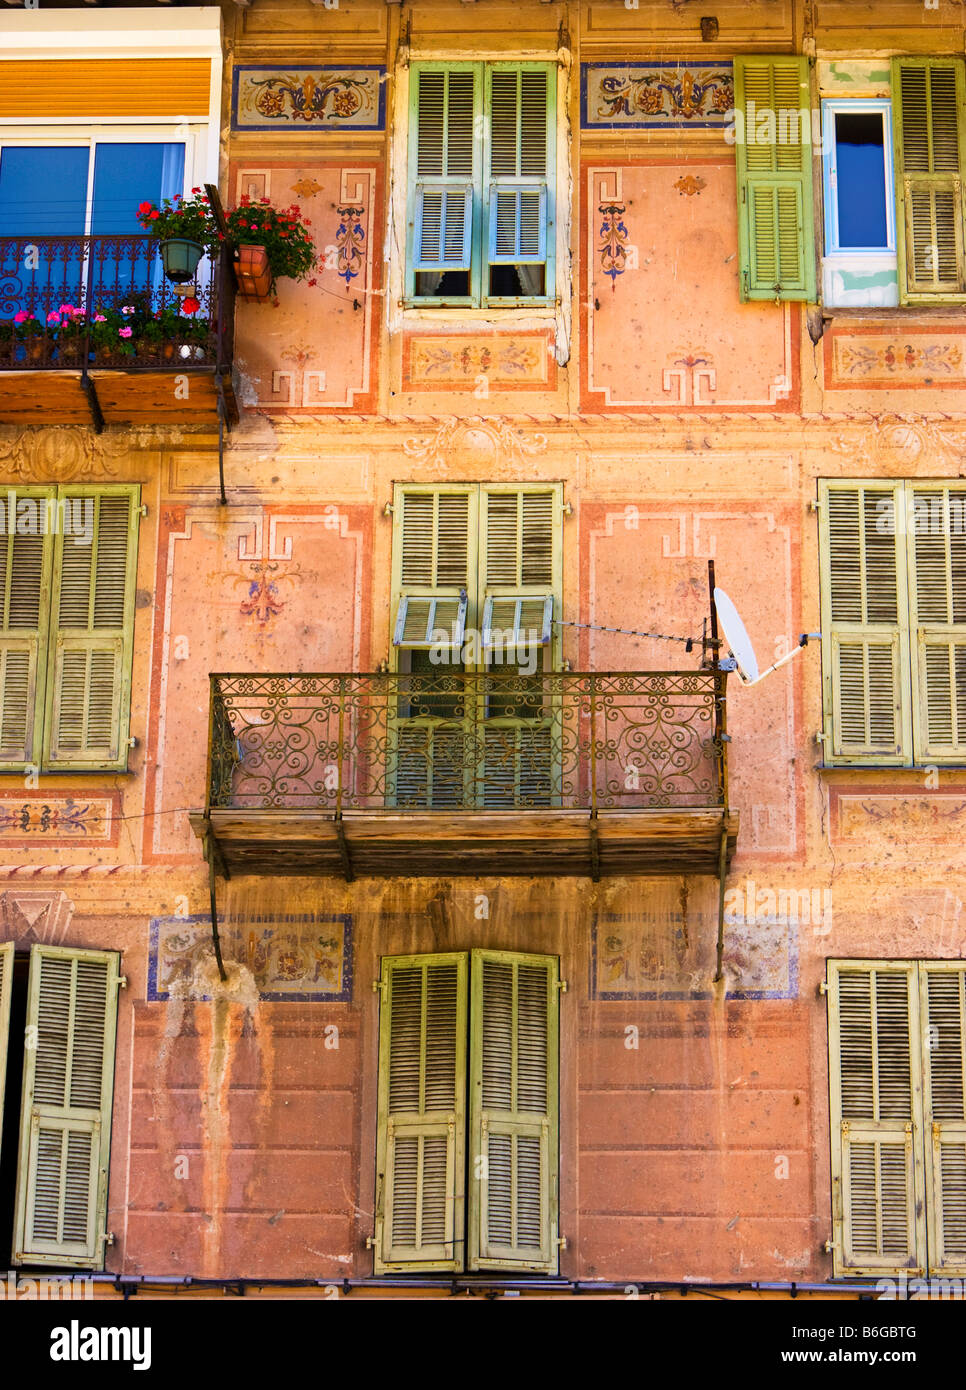 South of France - Decorated apartments and balcony in St Sauveur sur Tinee, Provence, France, South of France - Stock Image